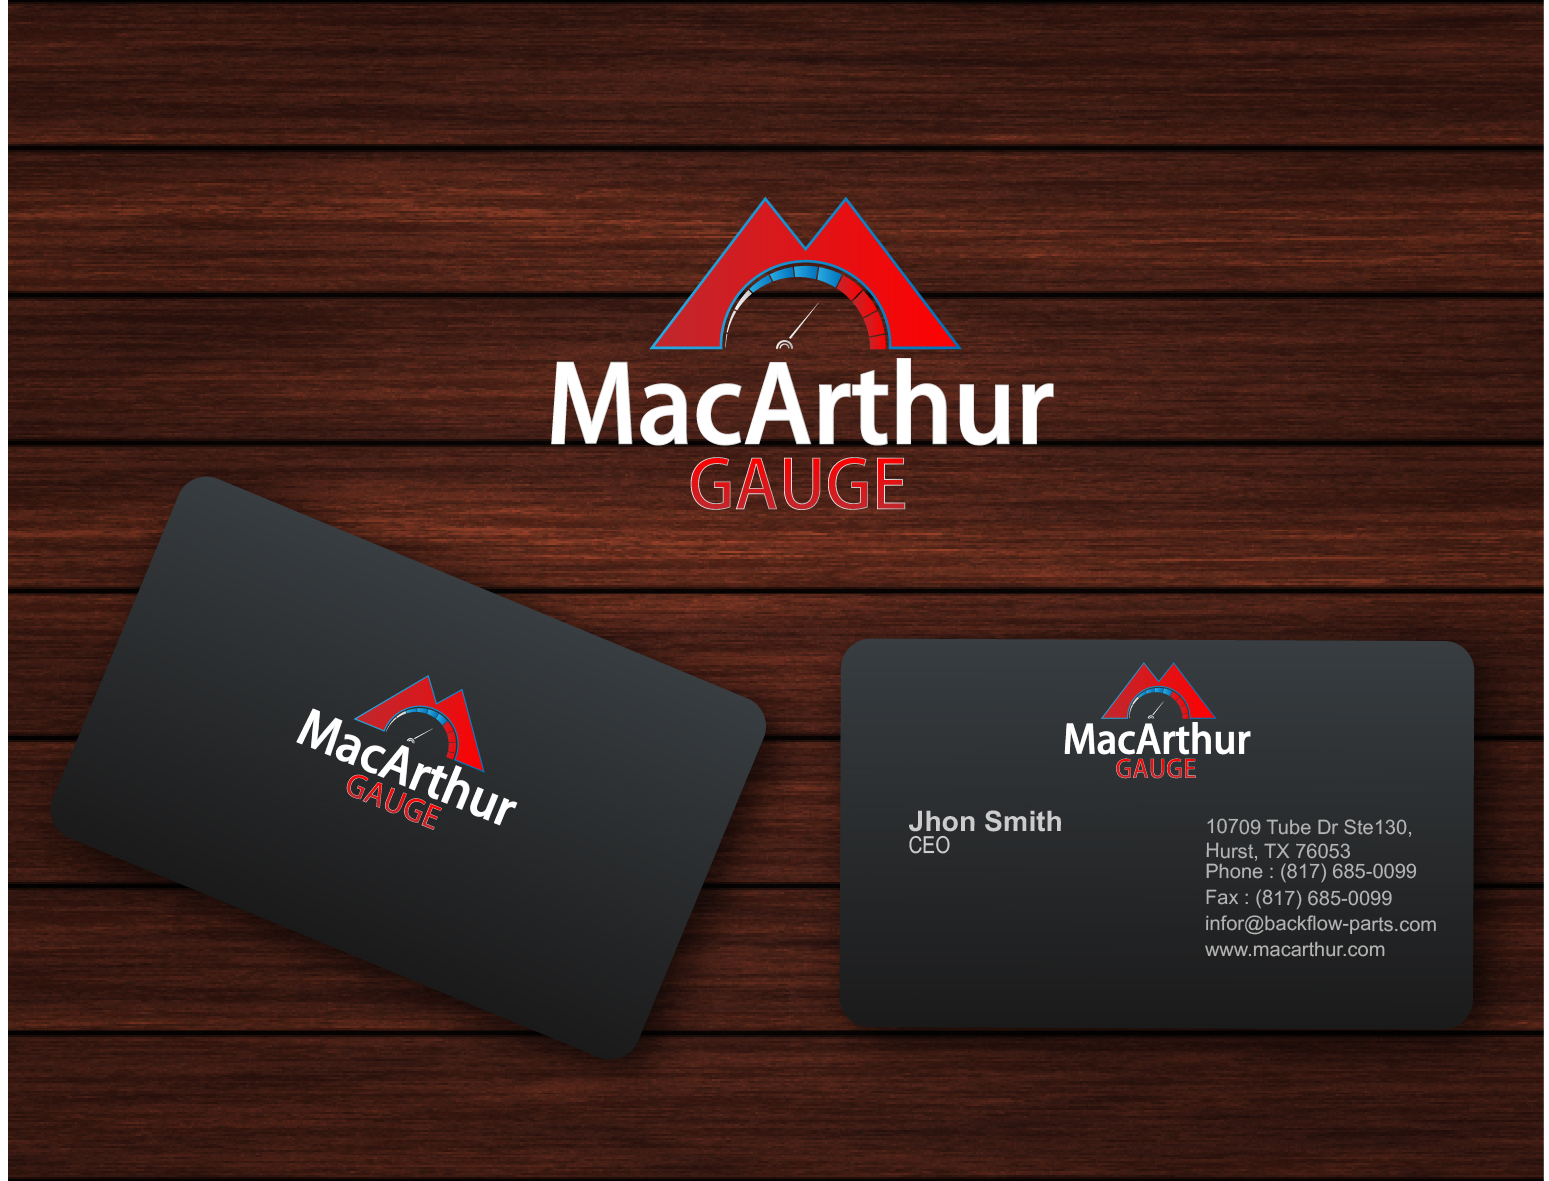 Logo Design by 3draw - Entry No. 238 in the Logo Design Contest Fun Logo Design for MacArthur Gauge.